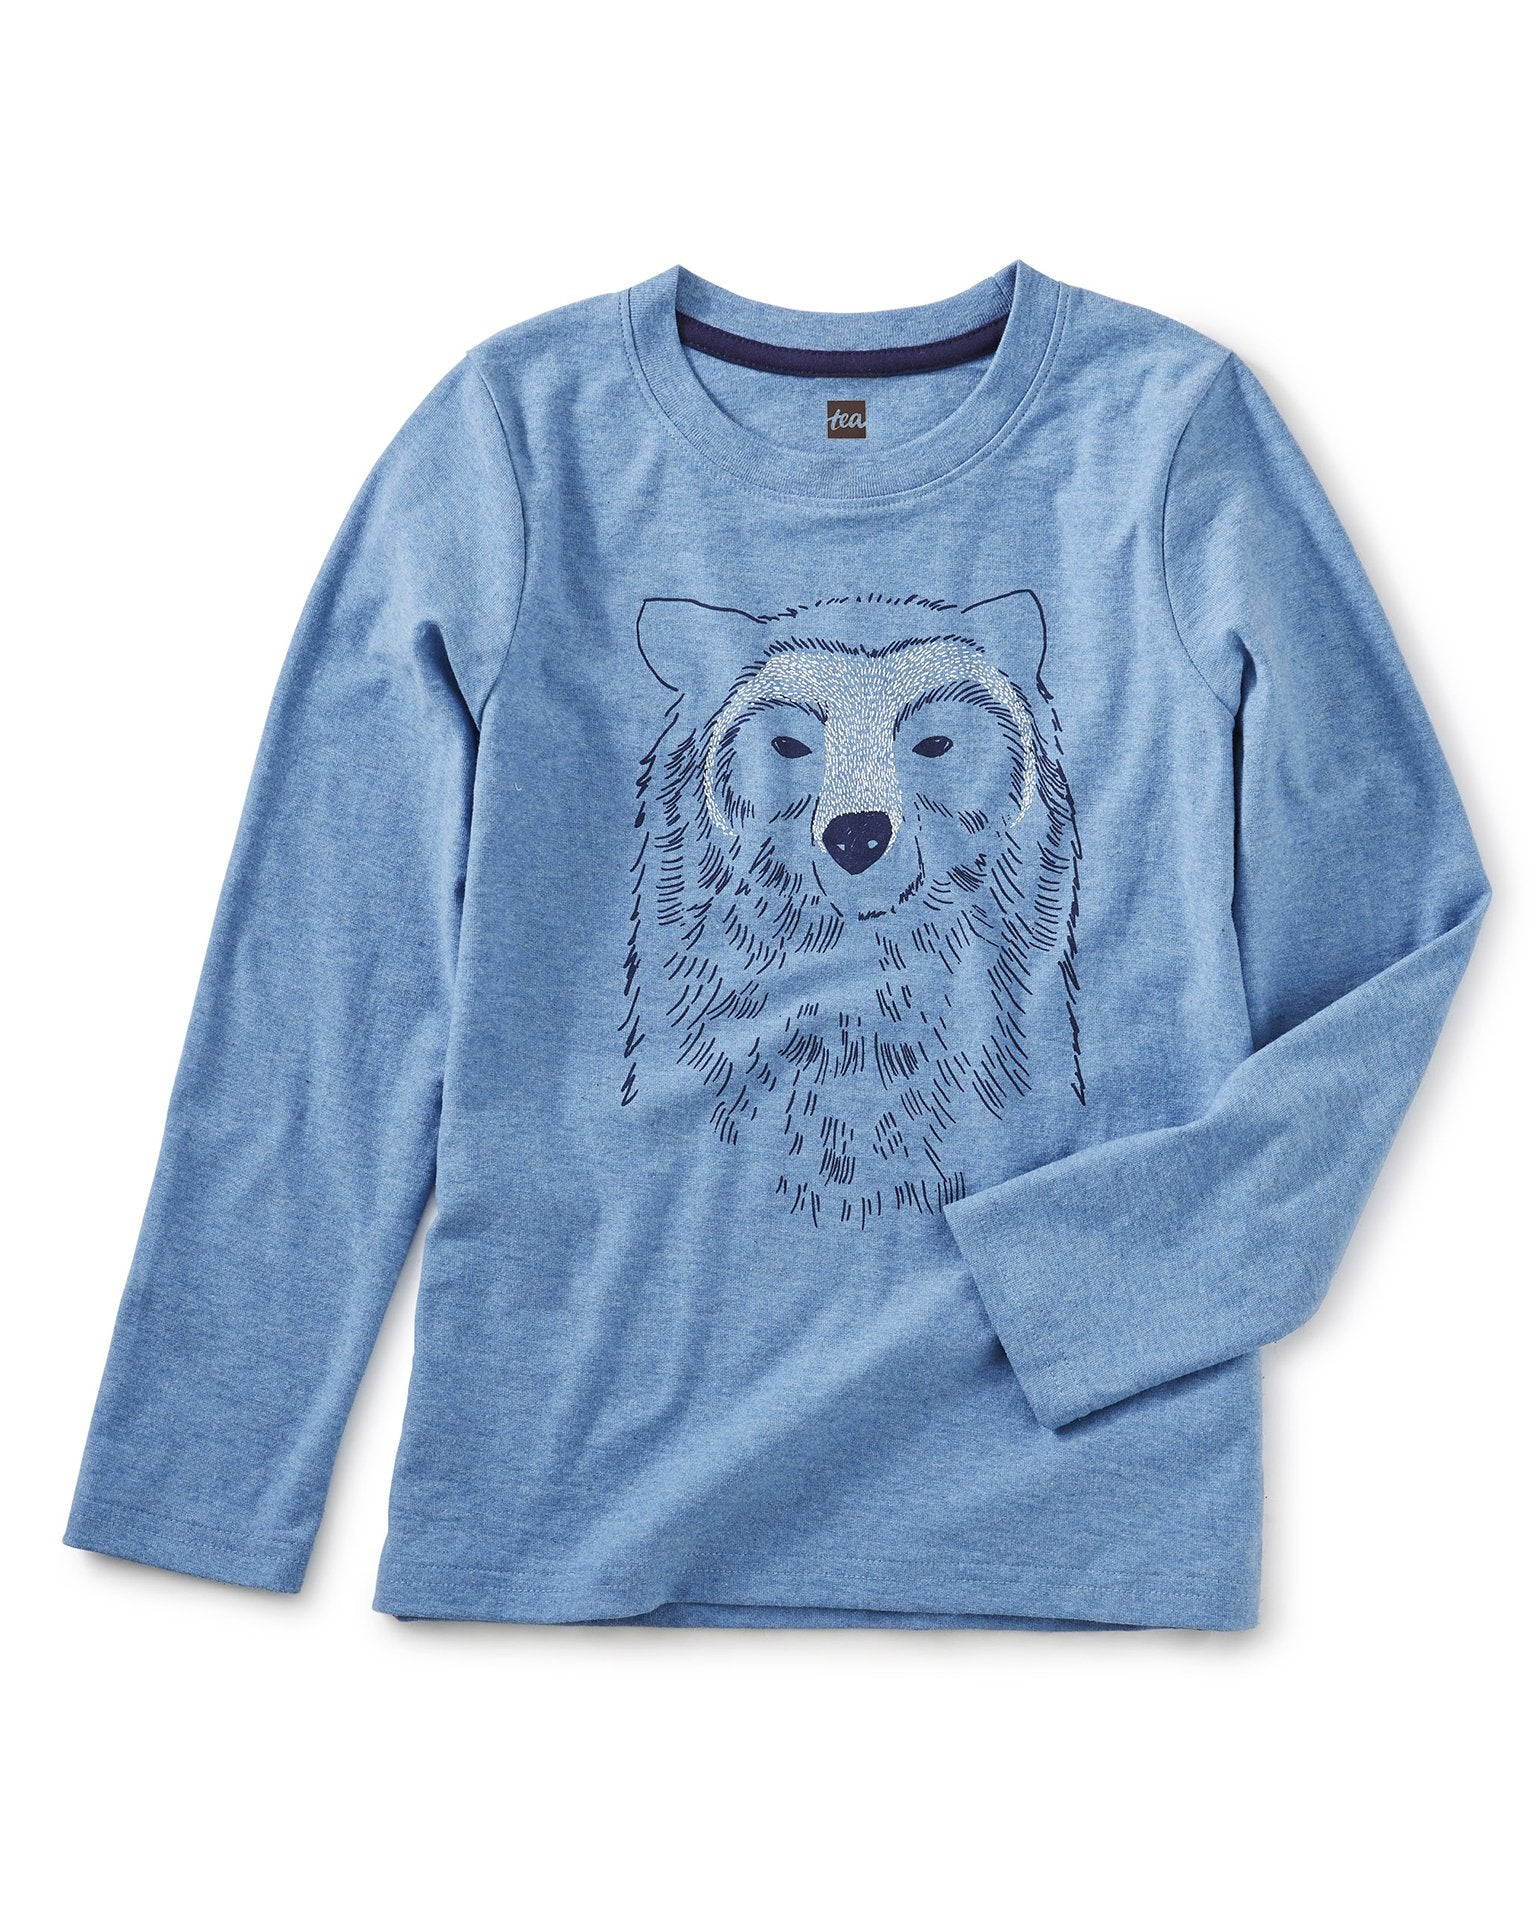 Little tea collection boy bear buddy graphic tee in pacific heather